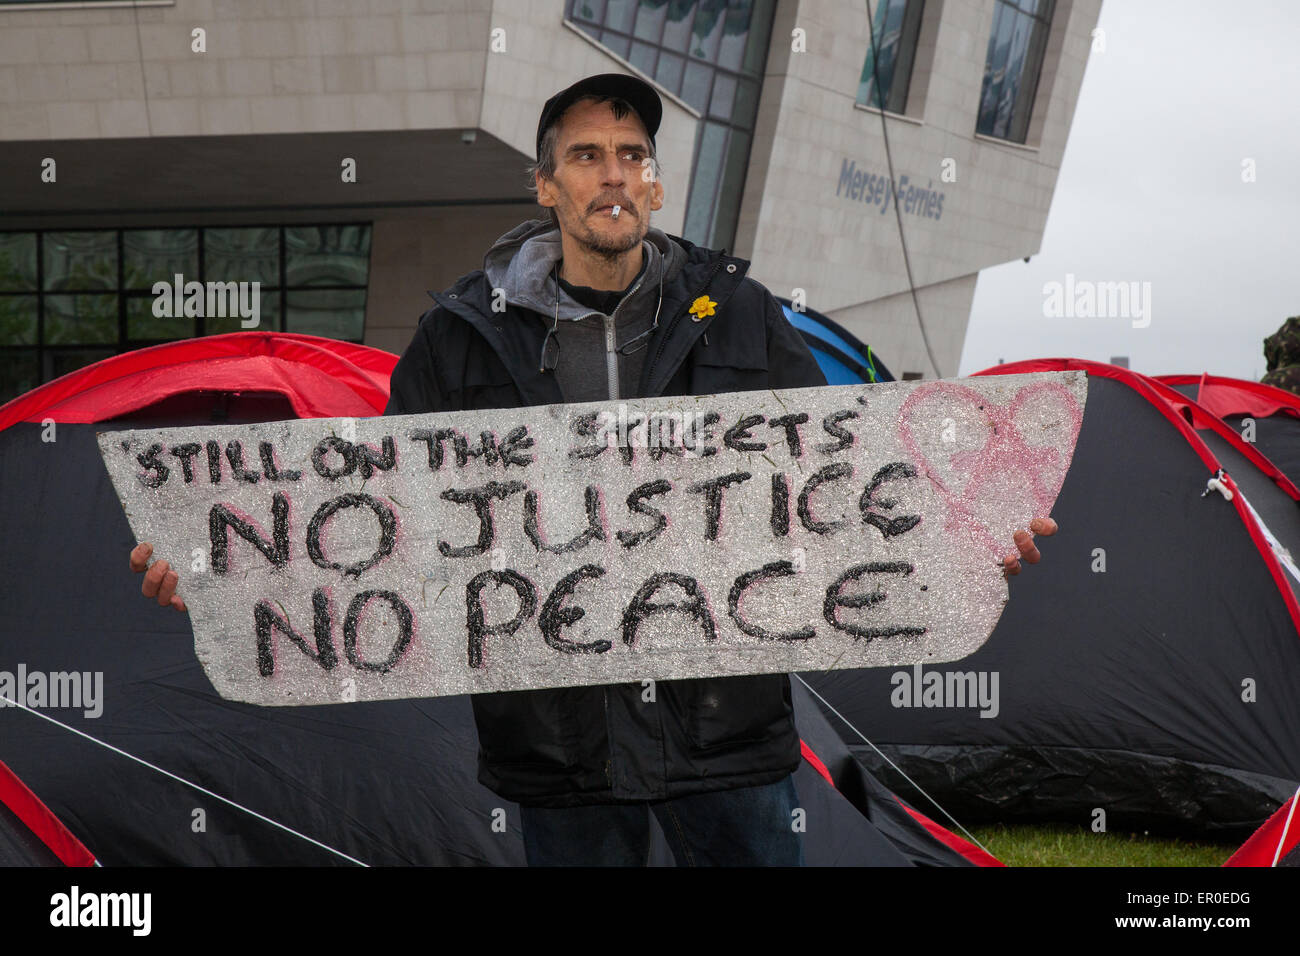 Homeless people in Liverpool, Merseyside, UK 24th May, 2015. Mr Christopher Gandy _ The Love Activists for the homeless, - Stock Image